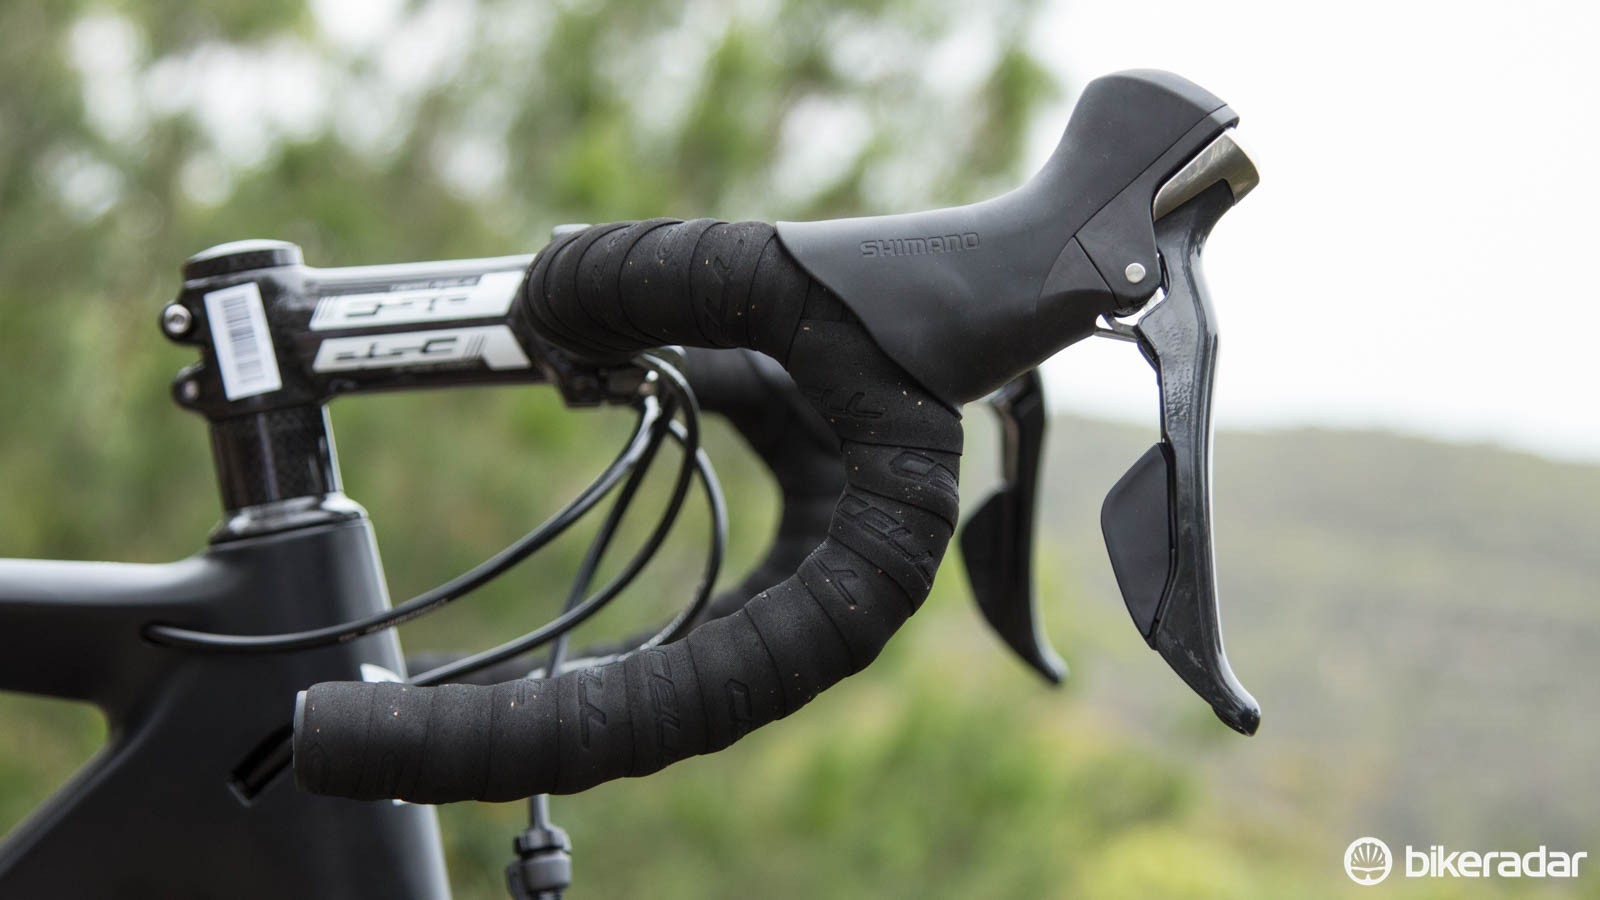 Road bike handlebars can dramatically affect your comfort and control on the bike